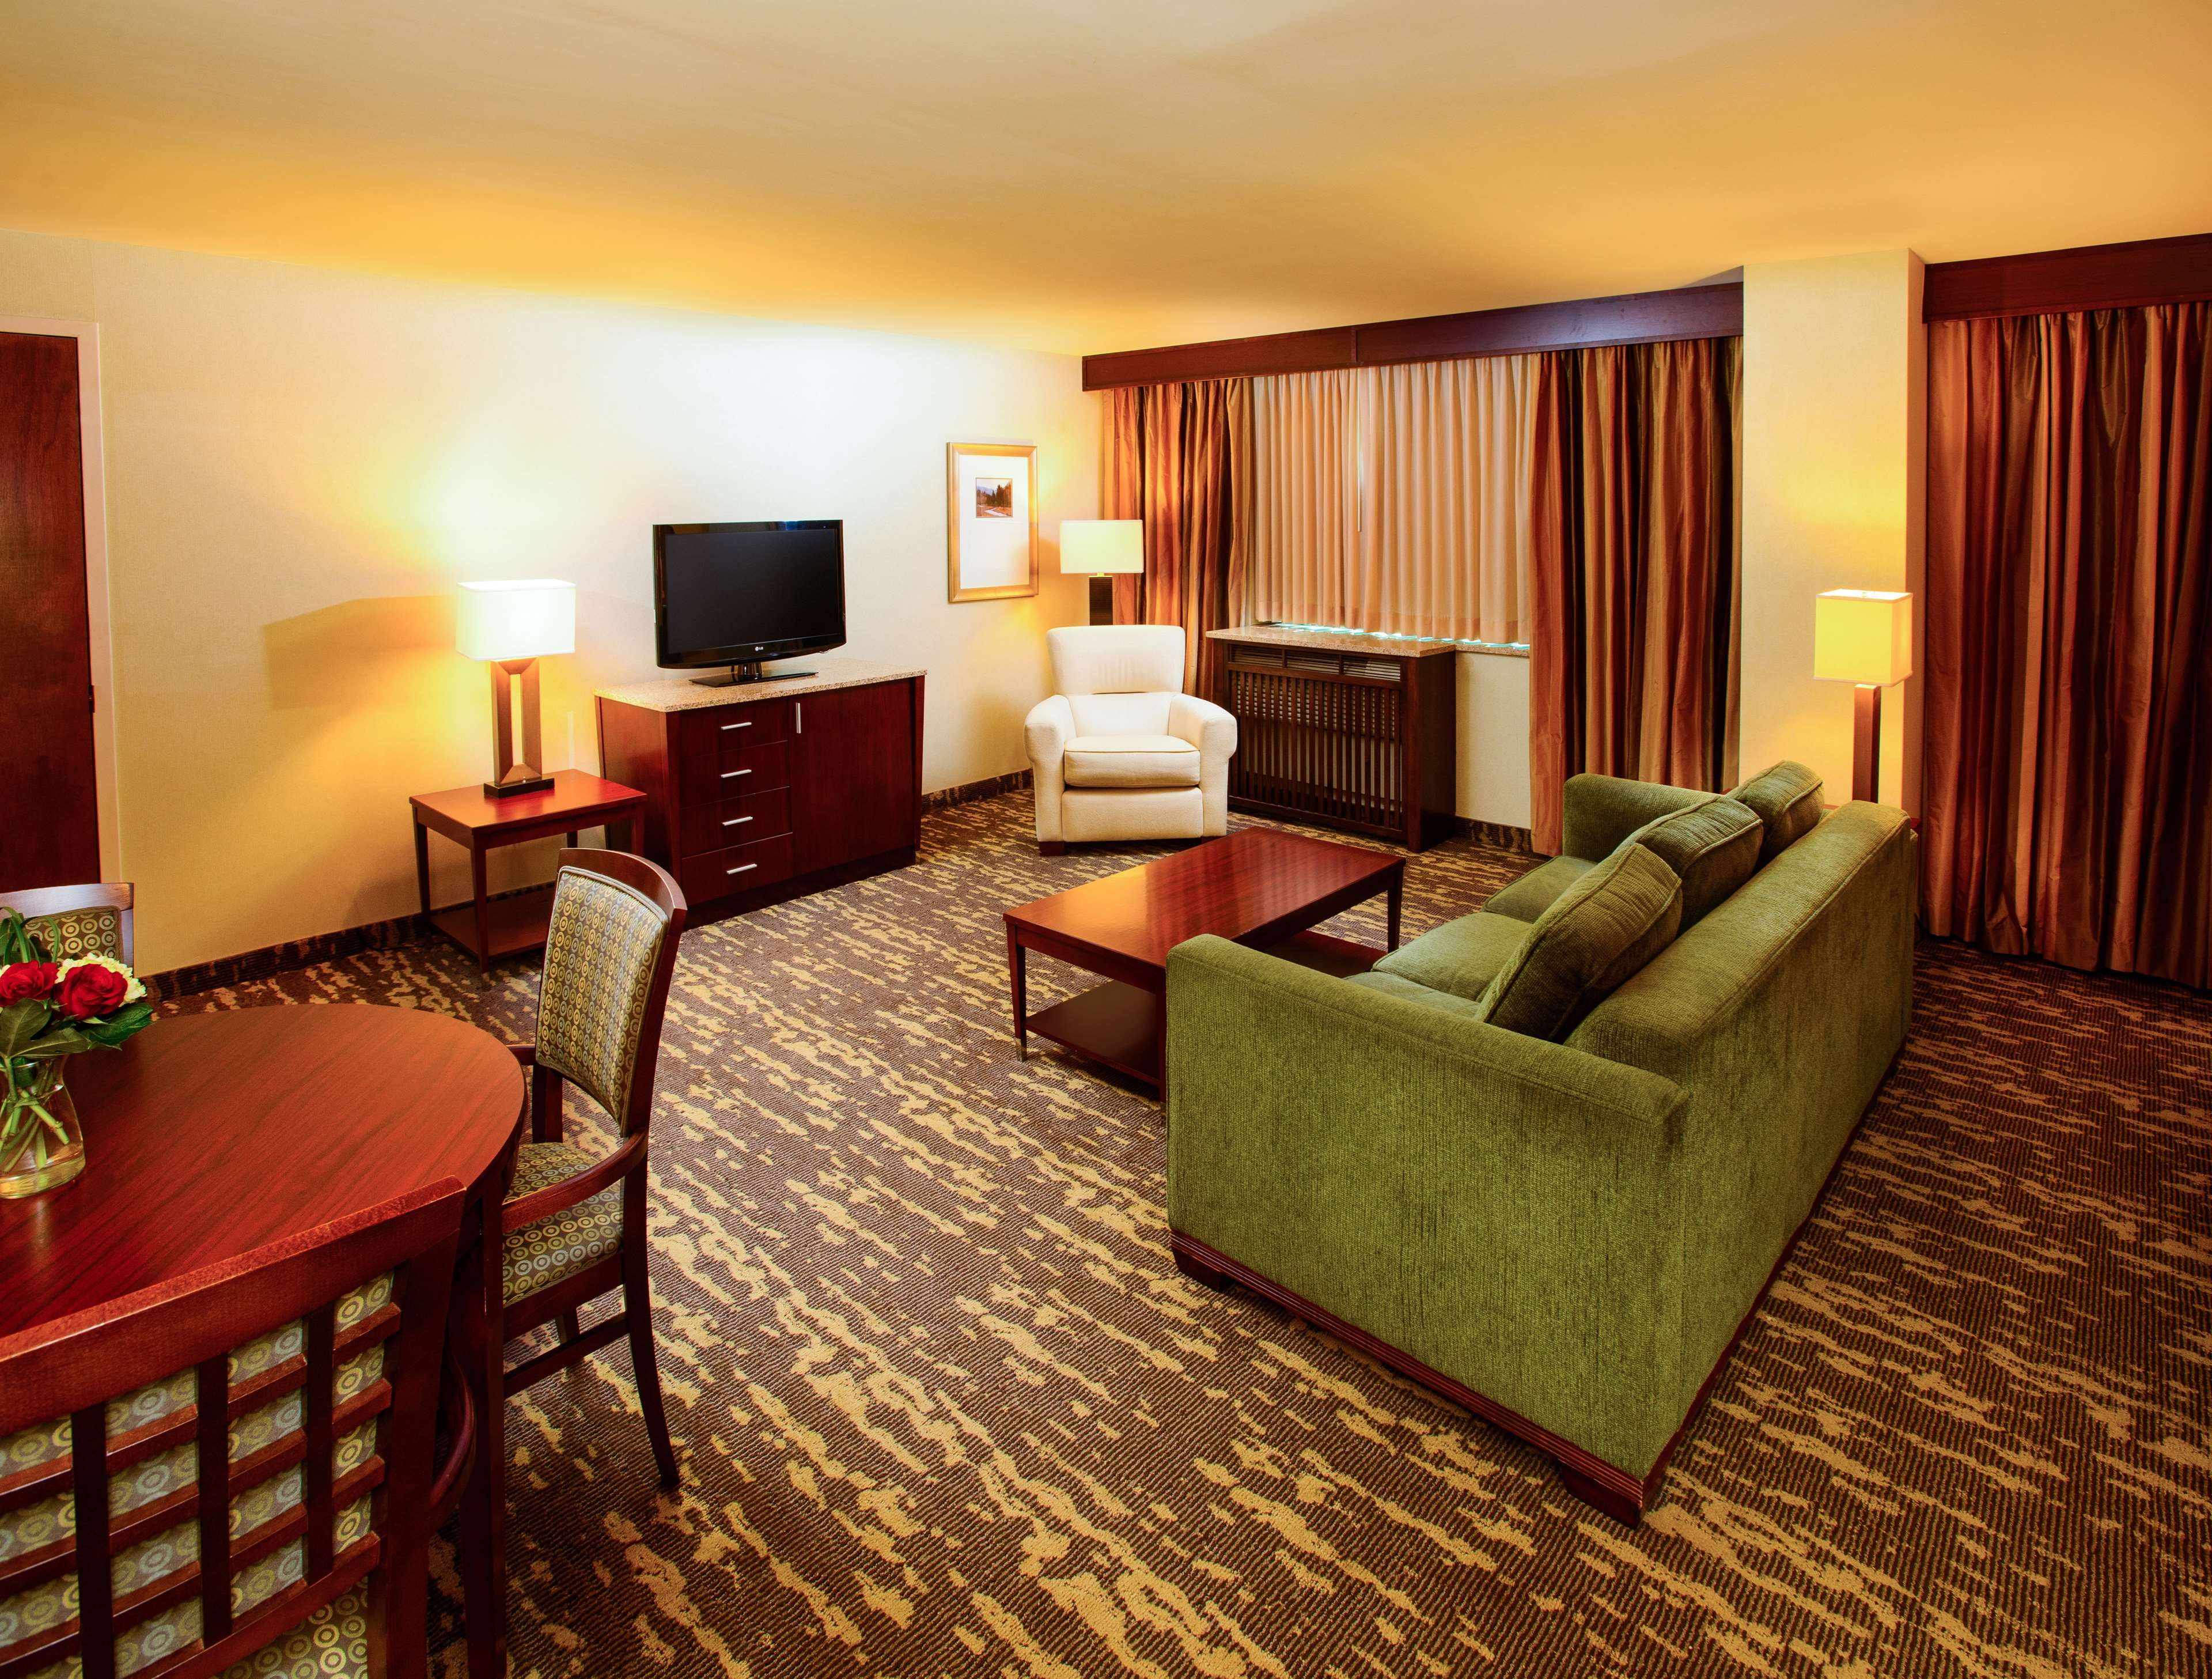 DoubleTree by Hilton Hotel Rochester - Mayo Clinic Area image 15